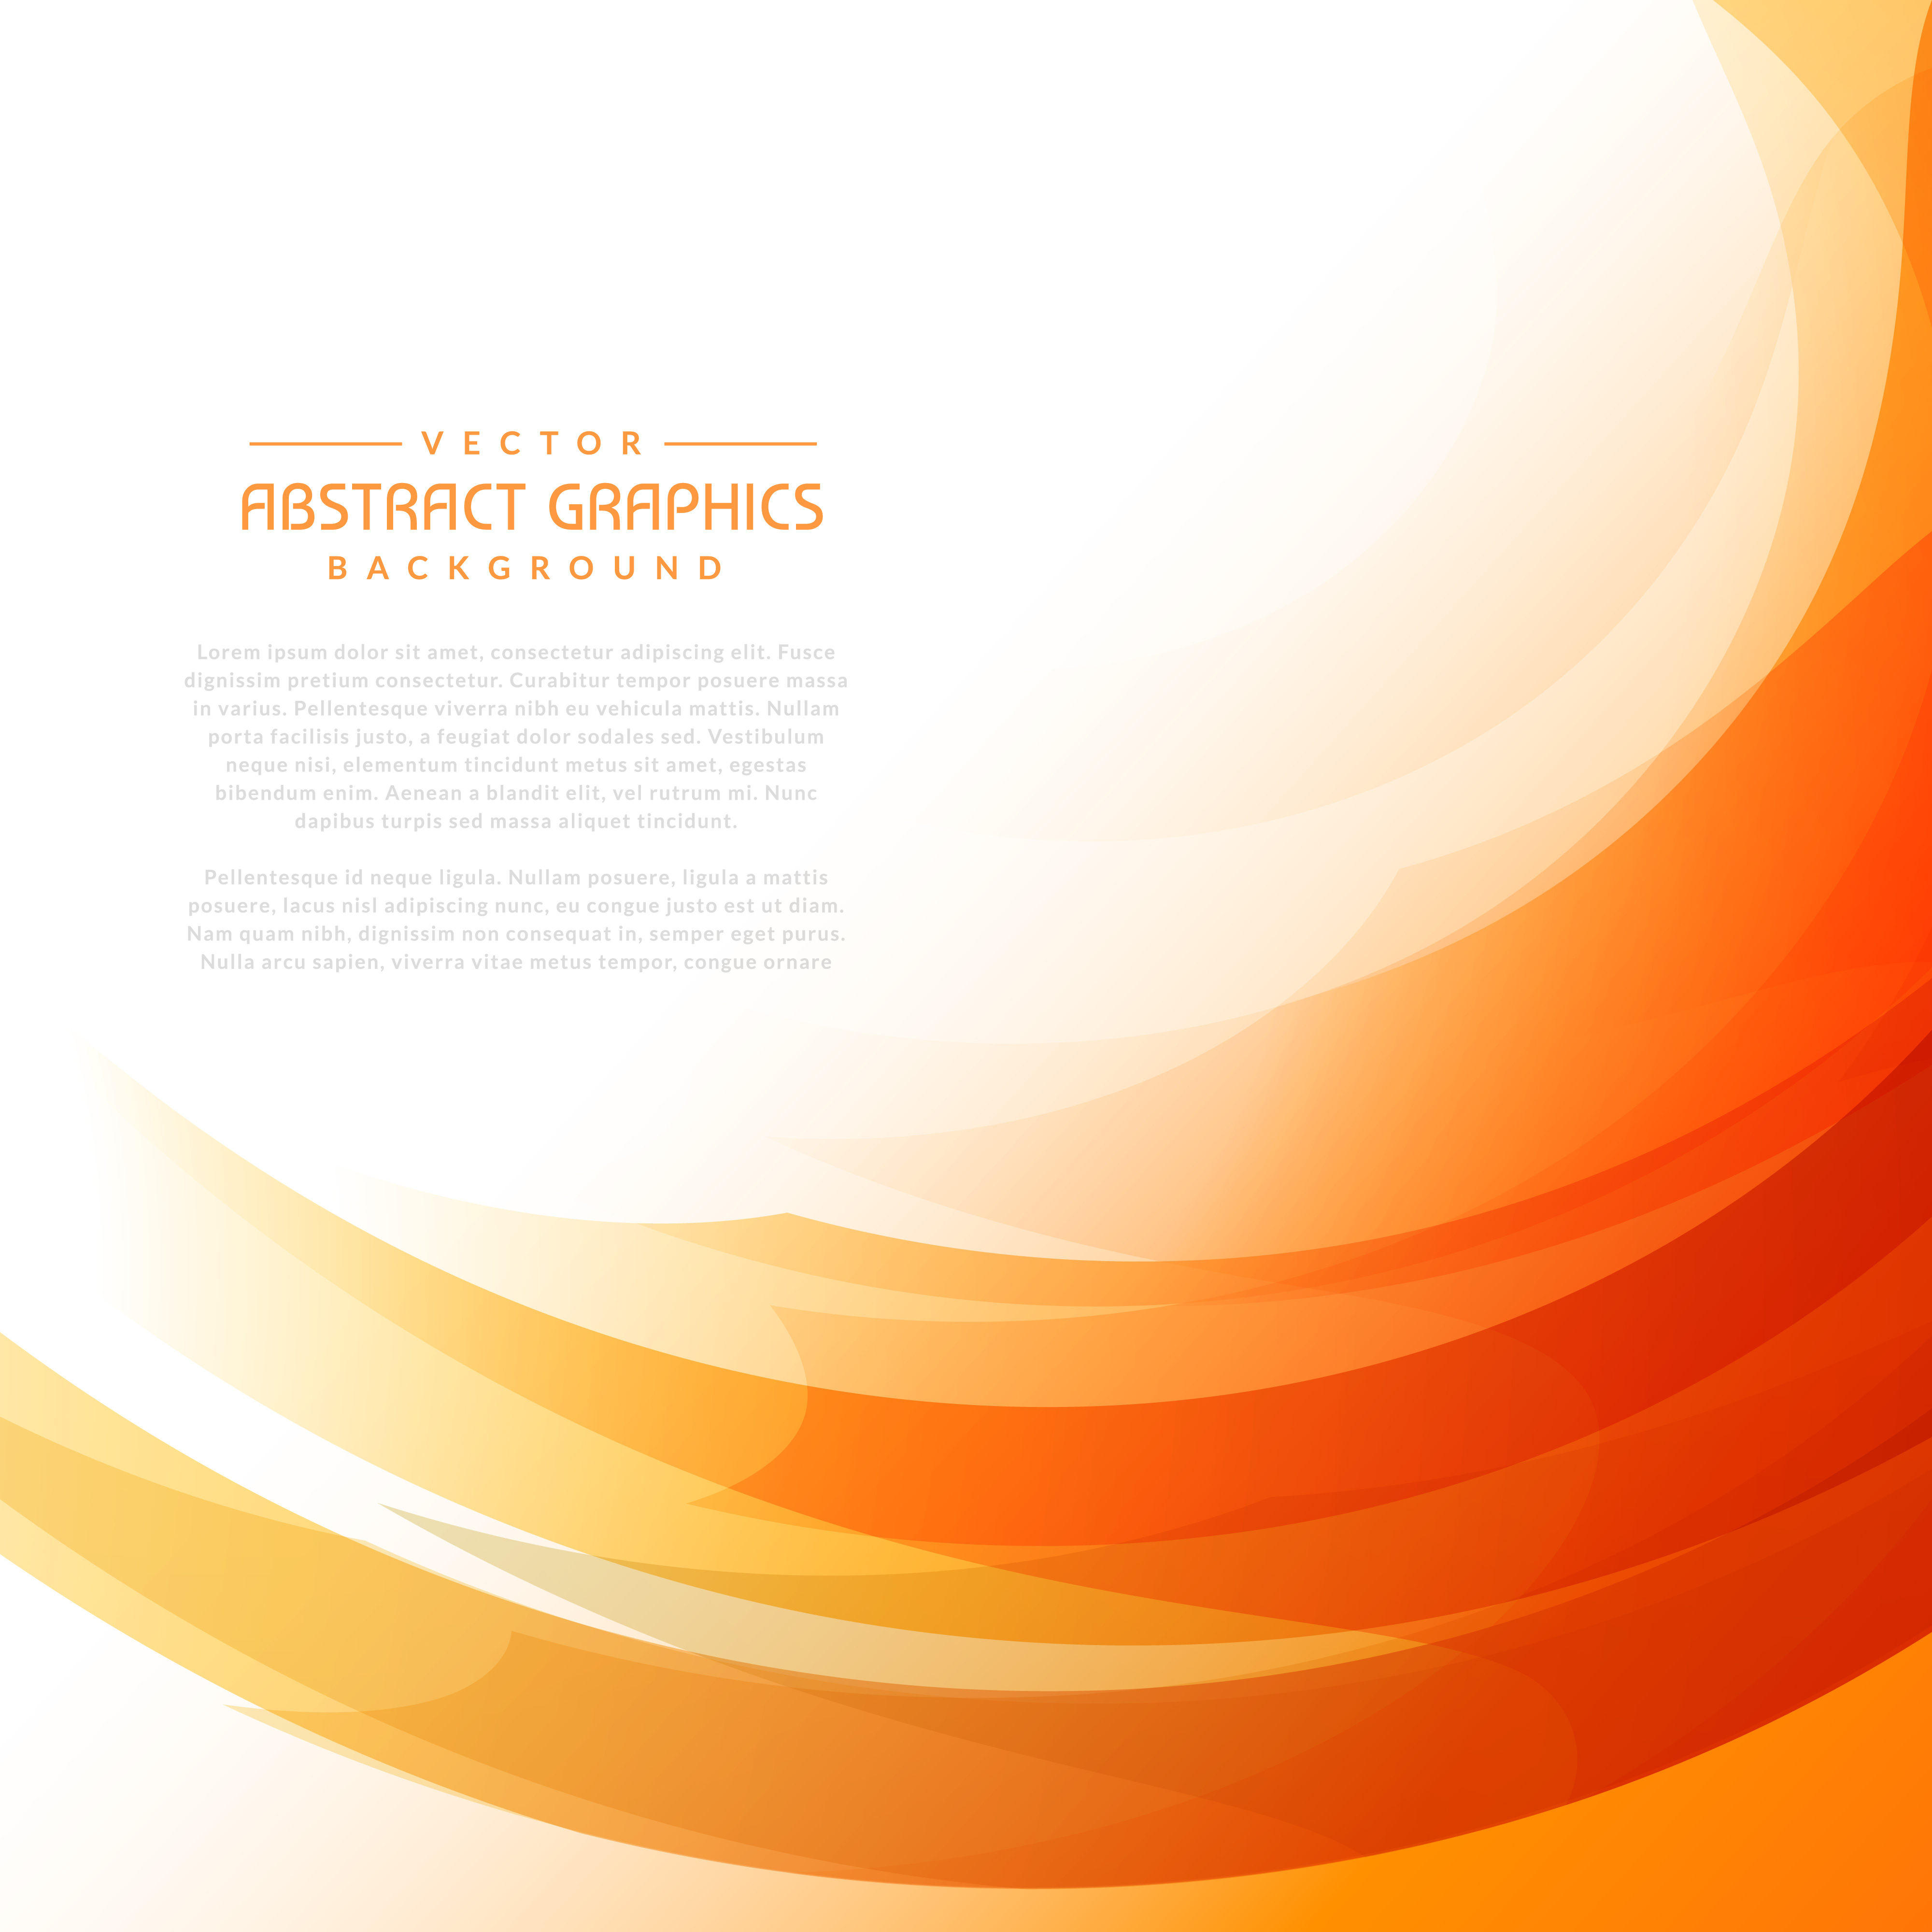 Orange Wavy Background With Abstract Shapes